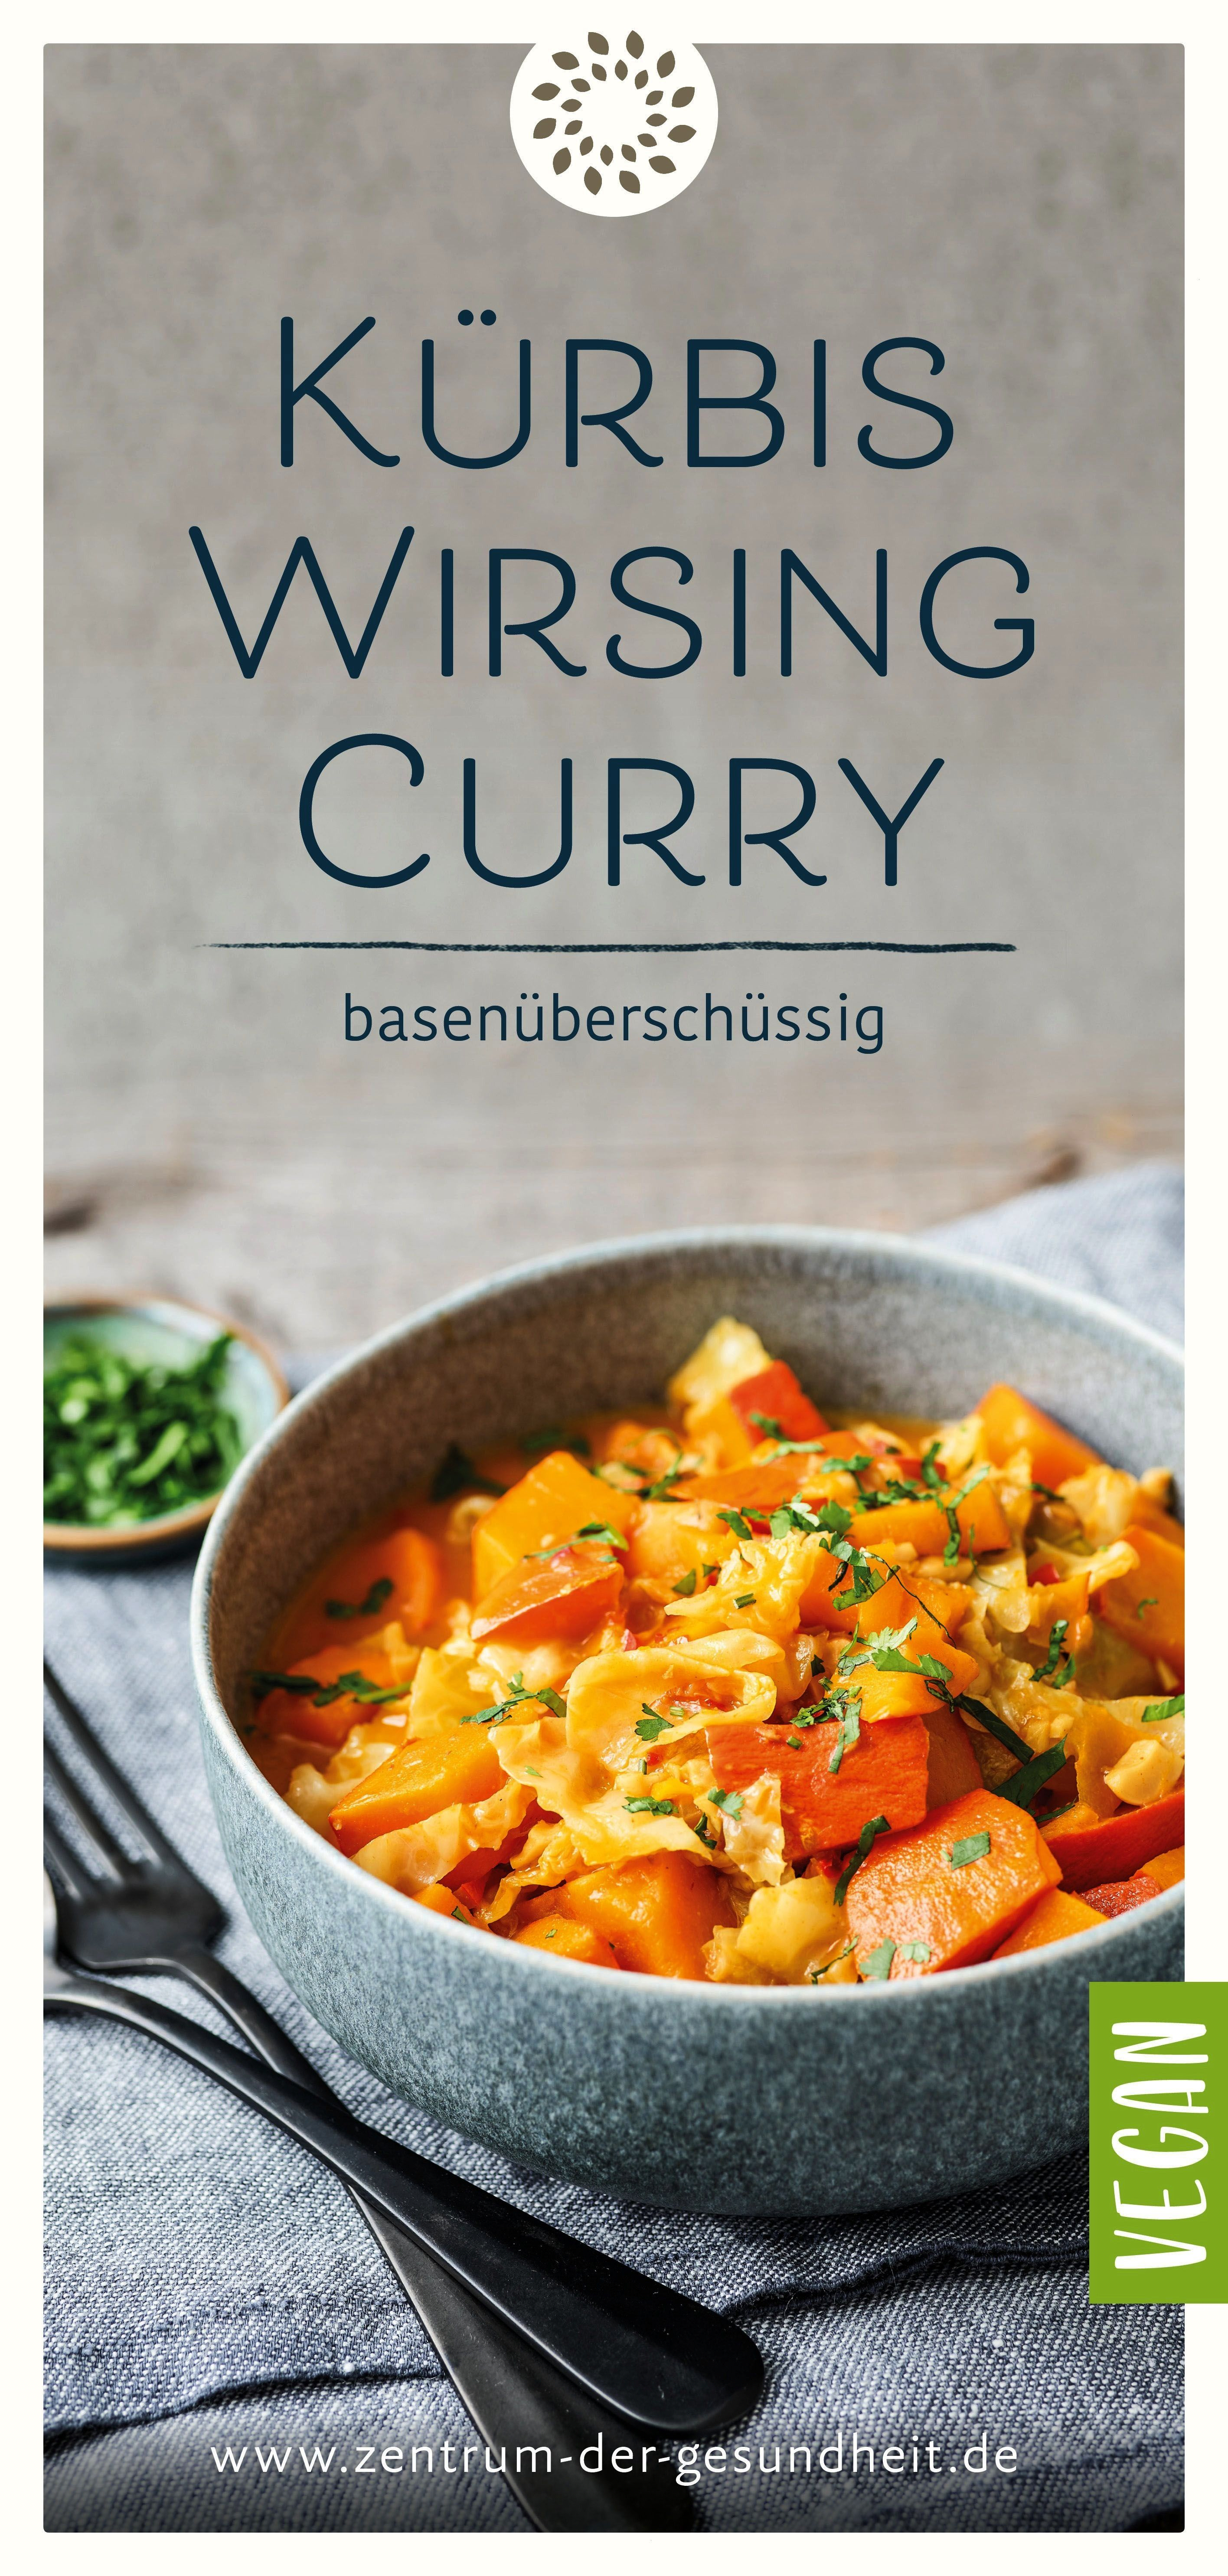 and savoy curry - excess base -  The pumpkin and savoy curry is easy to prepare and ready to serve